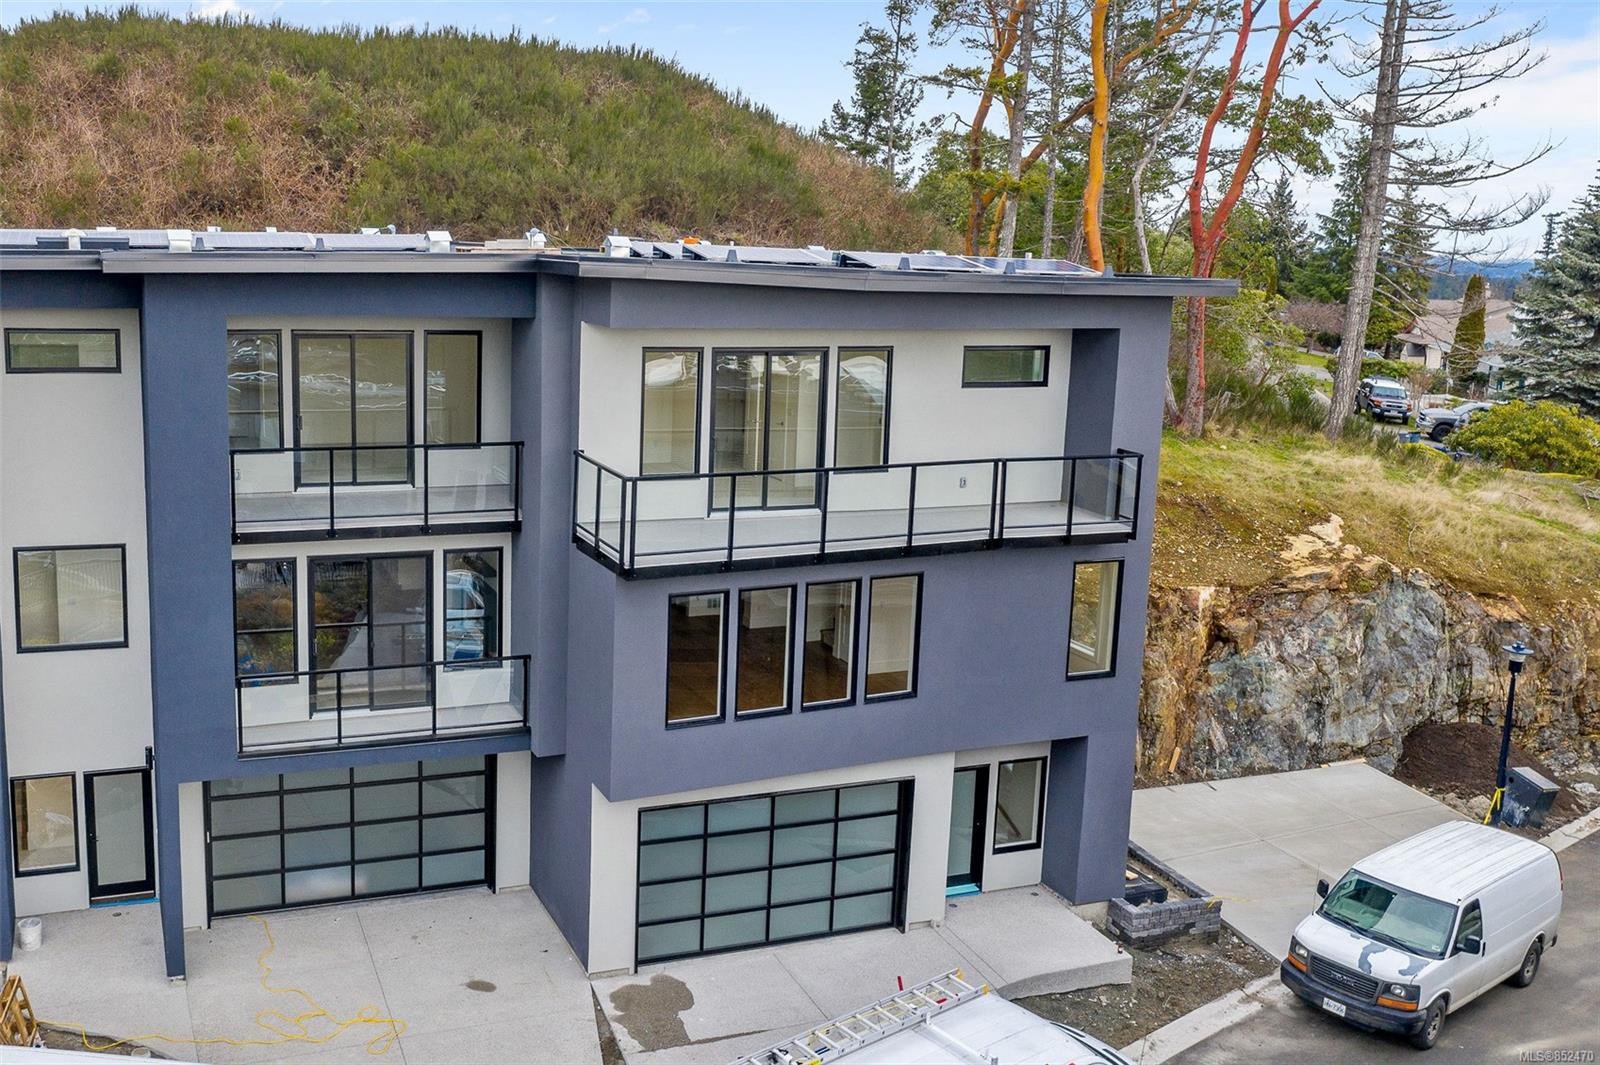 Main Photo: 111 539 Delora Dr in : Co Royal Bay Row/Townhouse for sale (Colwood)  : MLS®# 852470